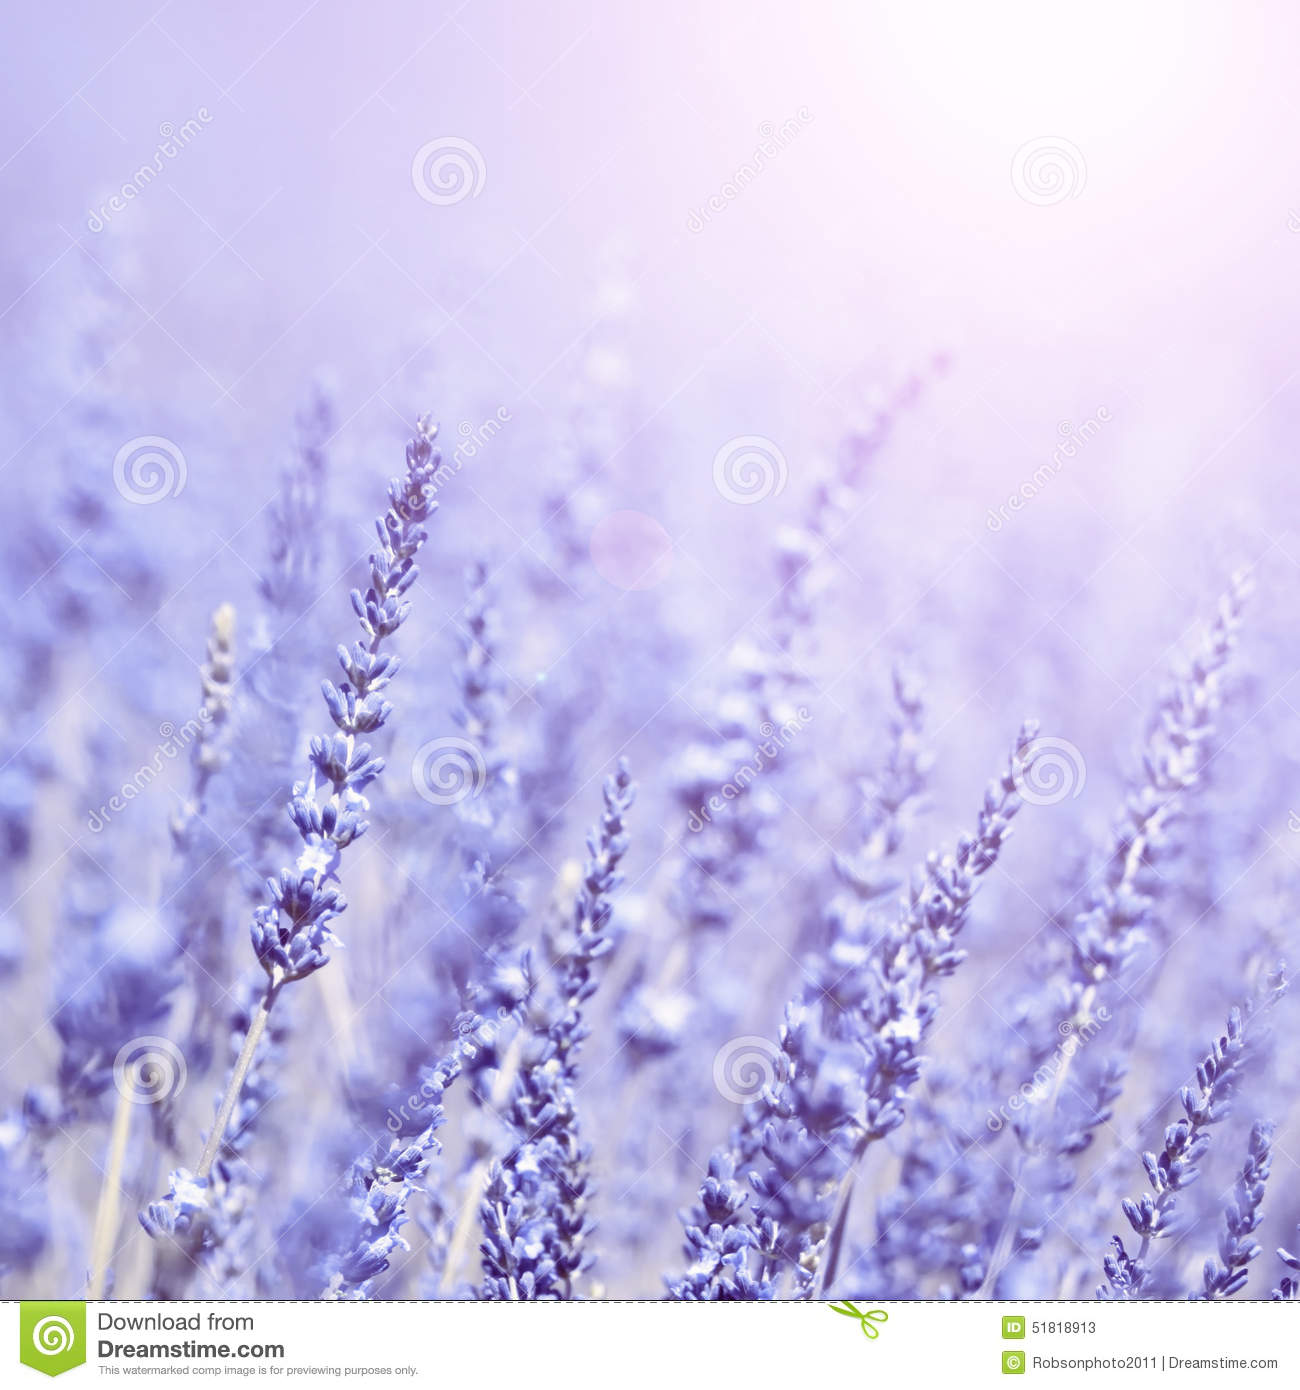 lavender vintage background - photo #3